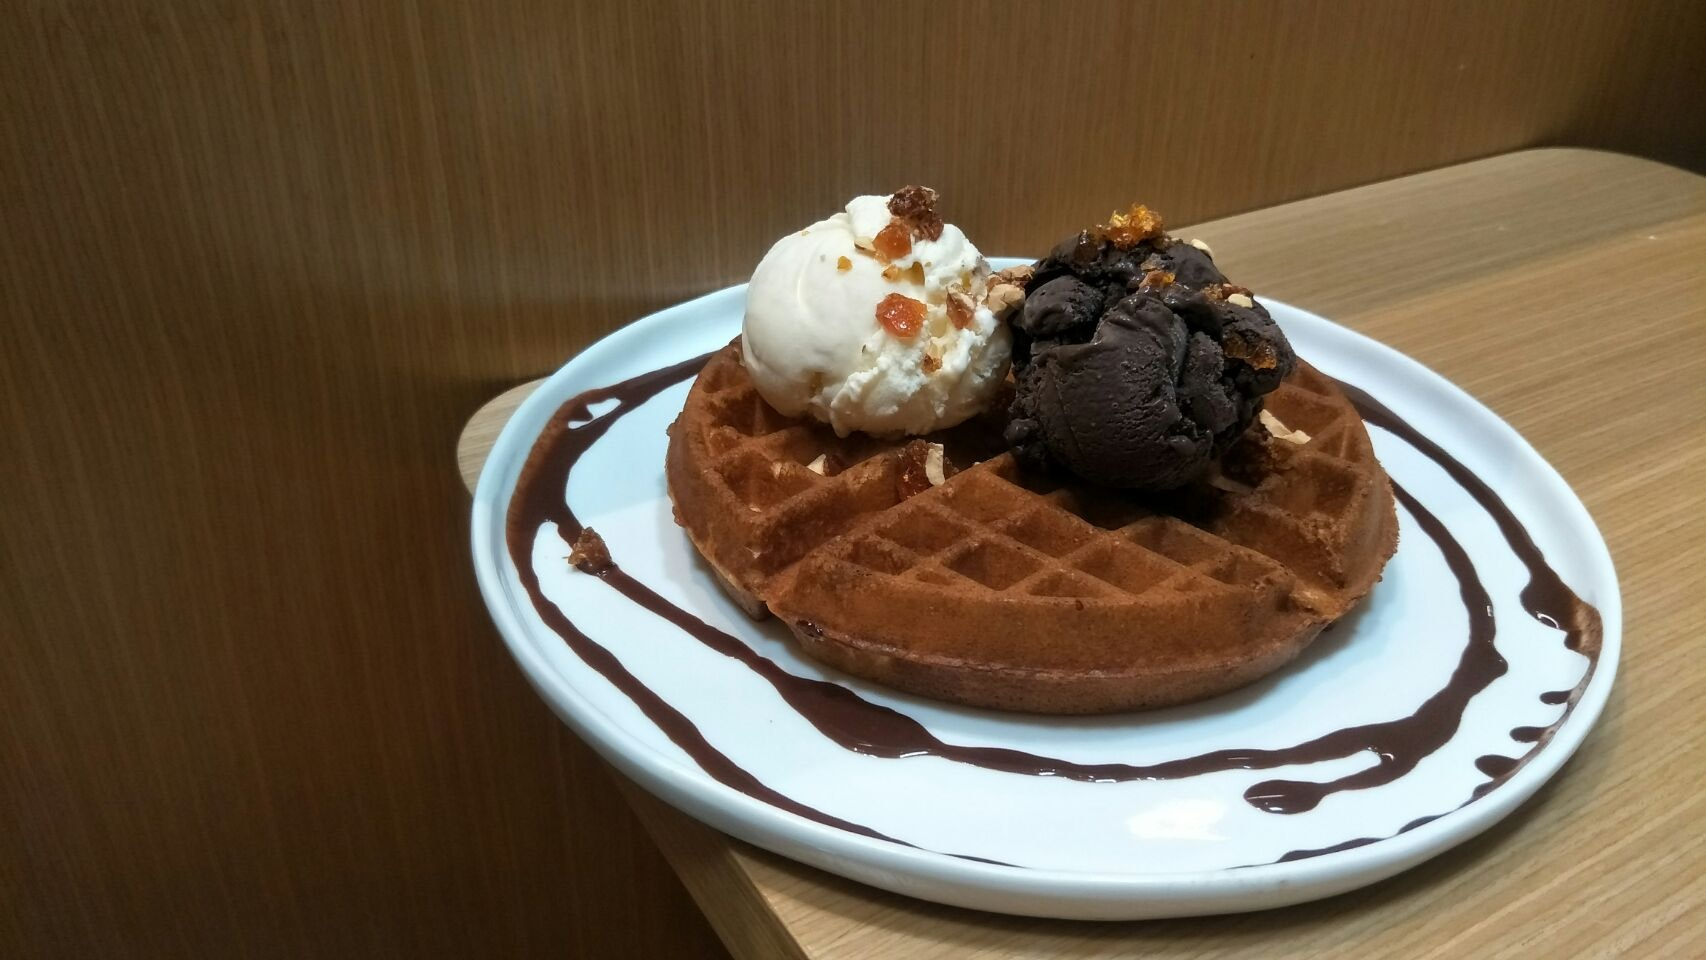 Indulgent ice cream waffles ($14)